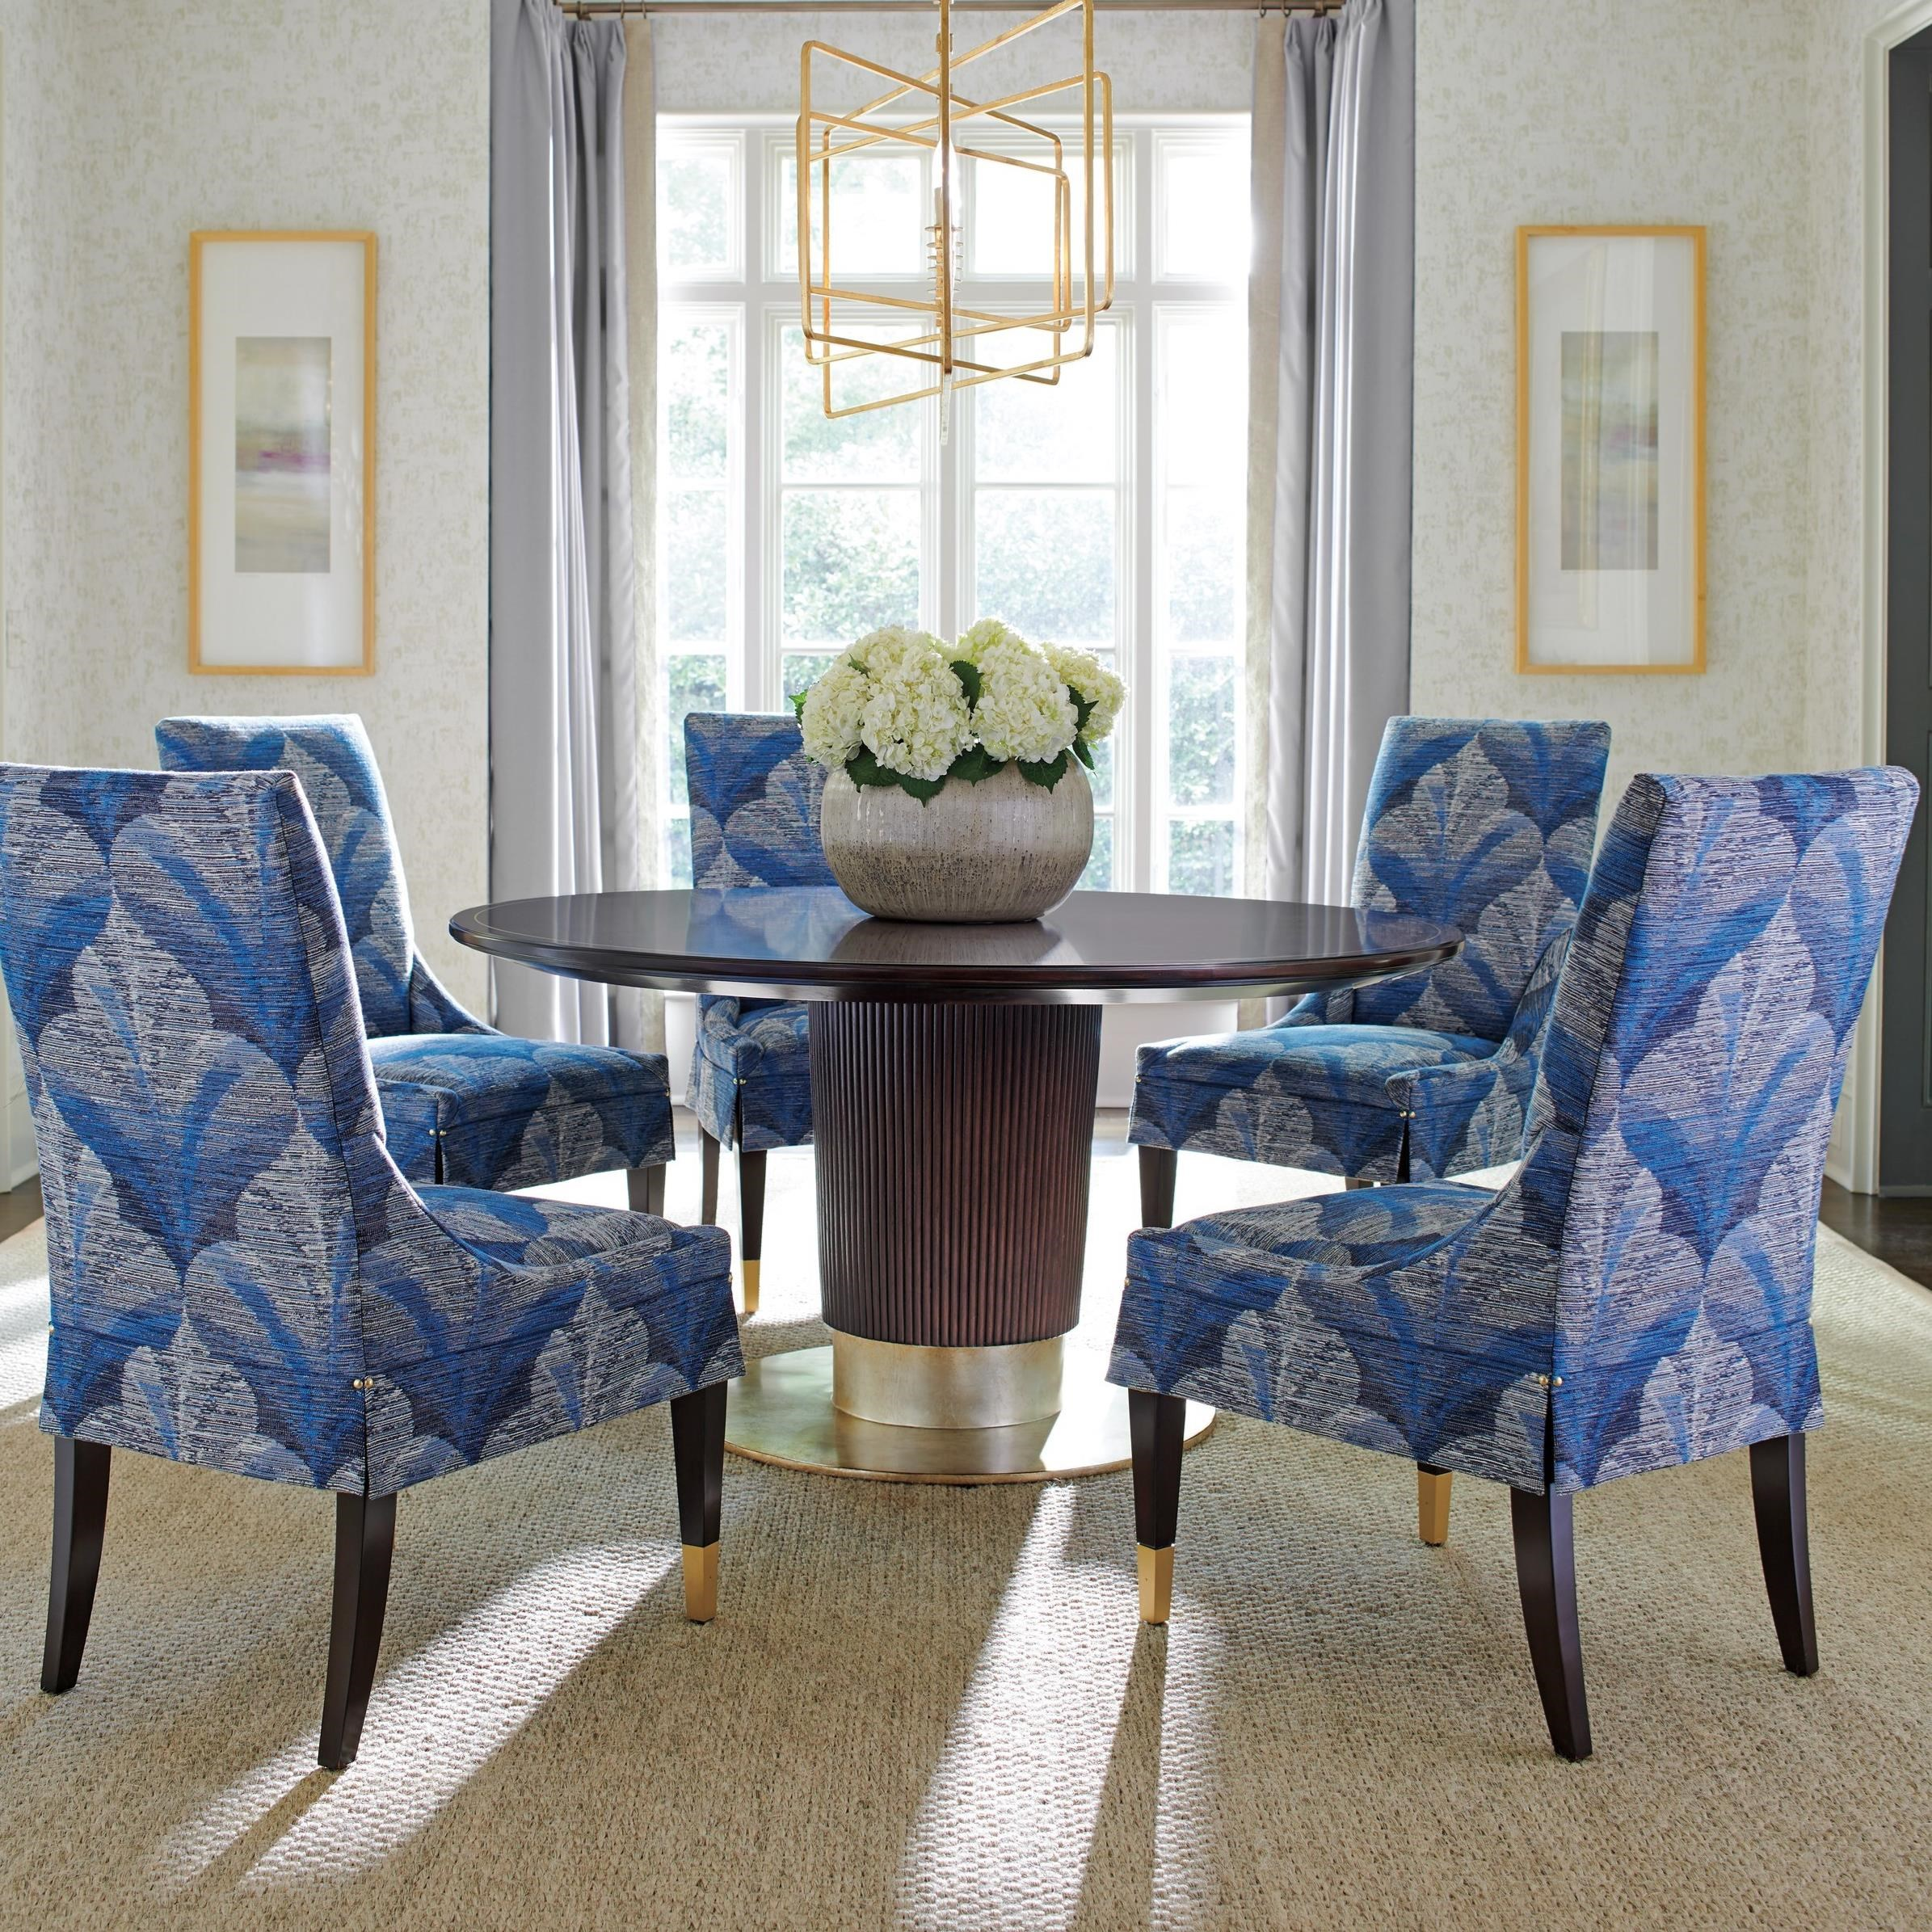 Carlyle 6 Pc Dining Set by Lexington at Baer's Furniture